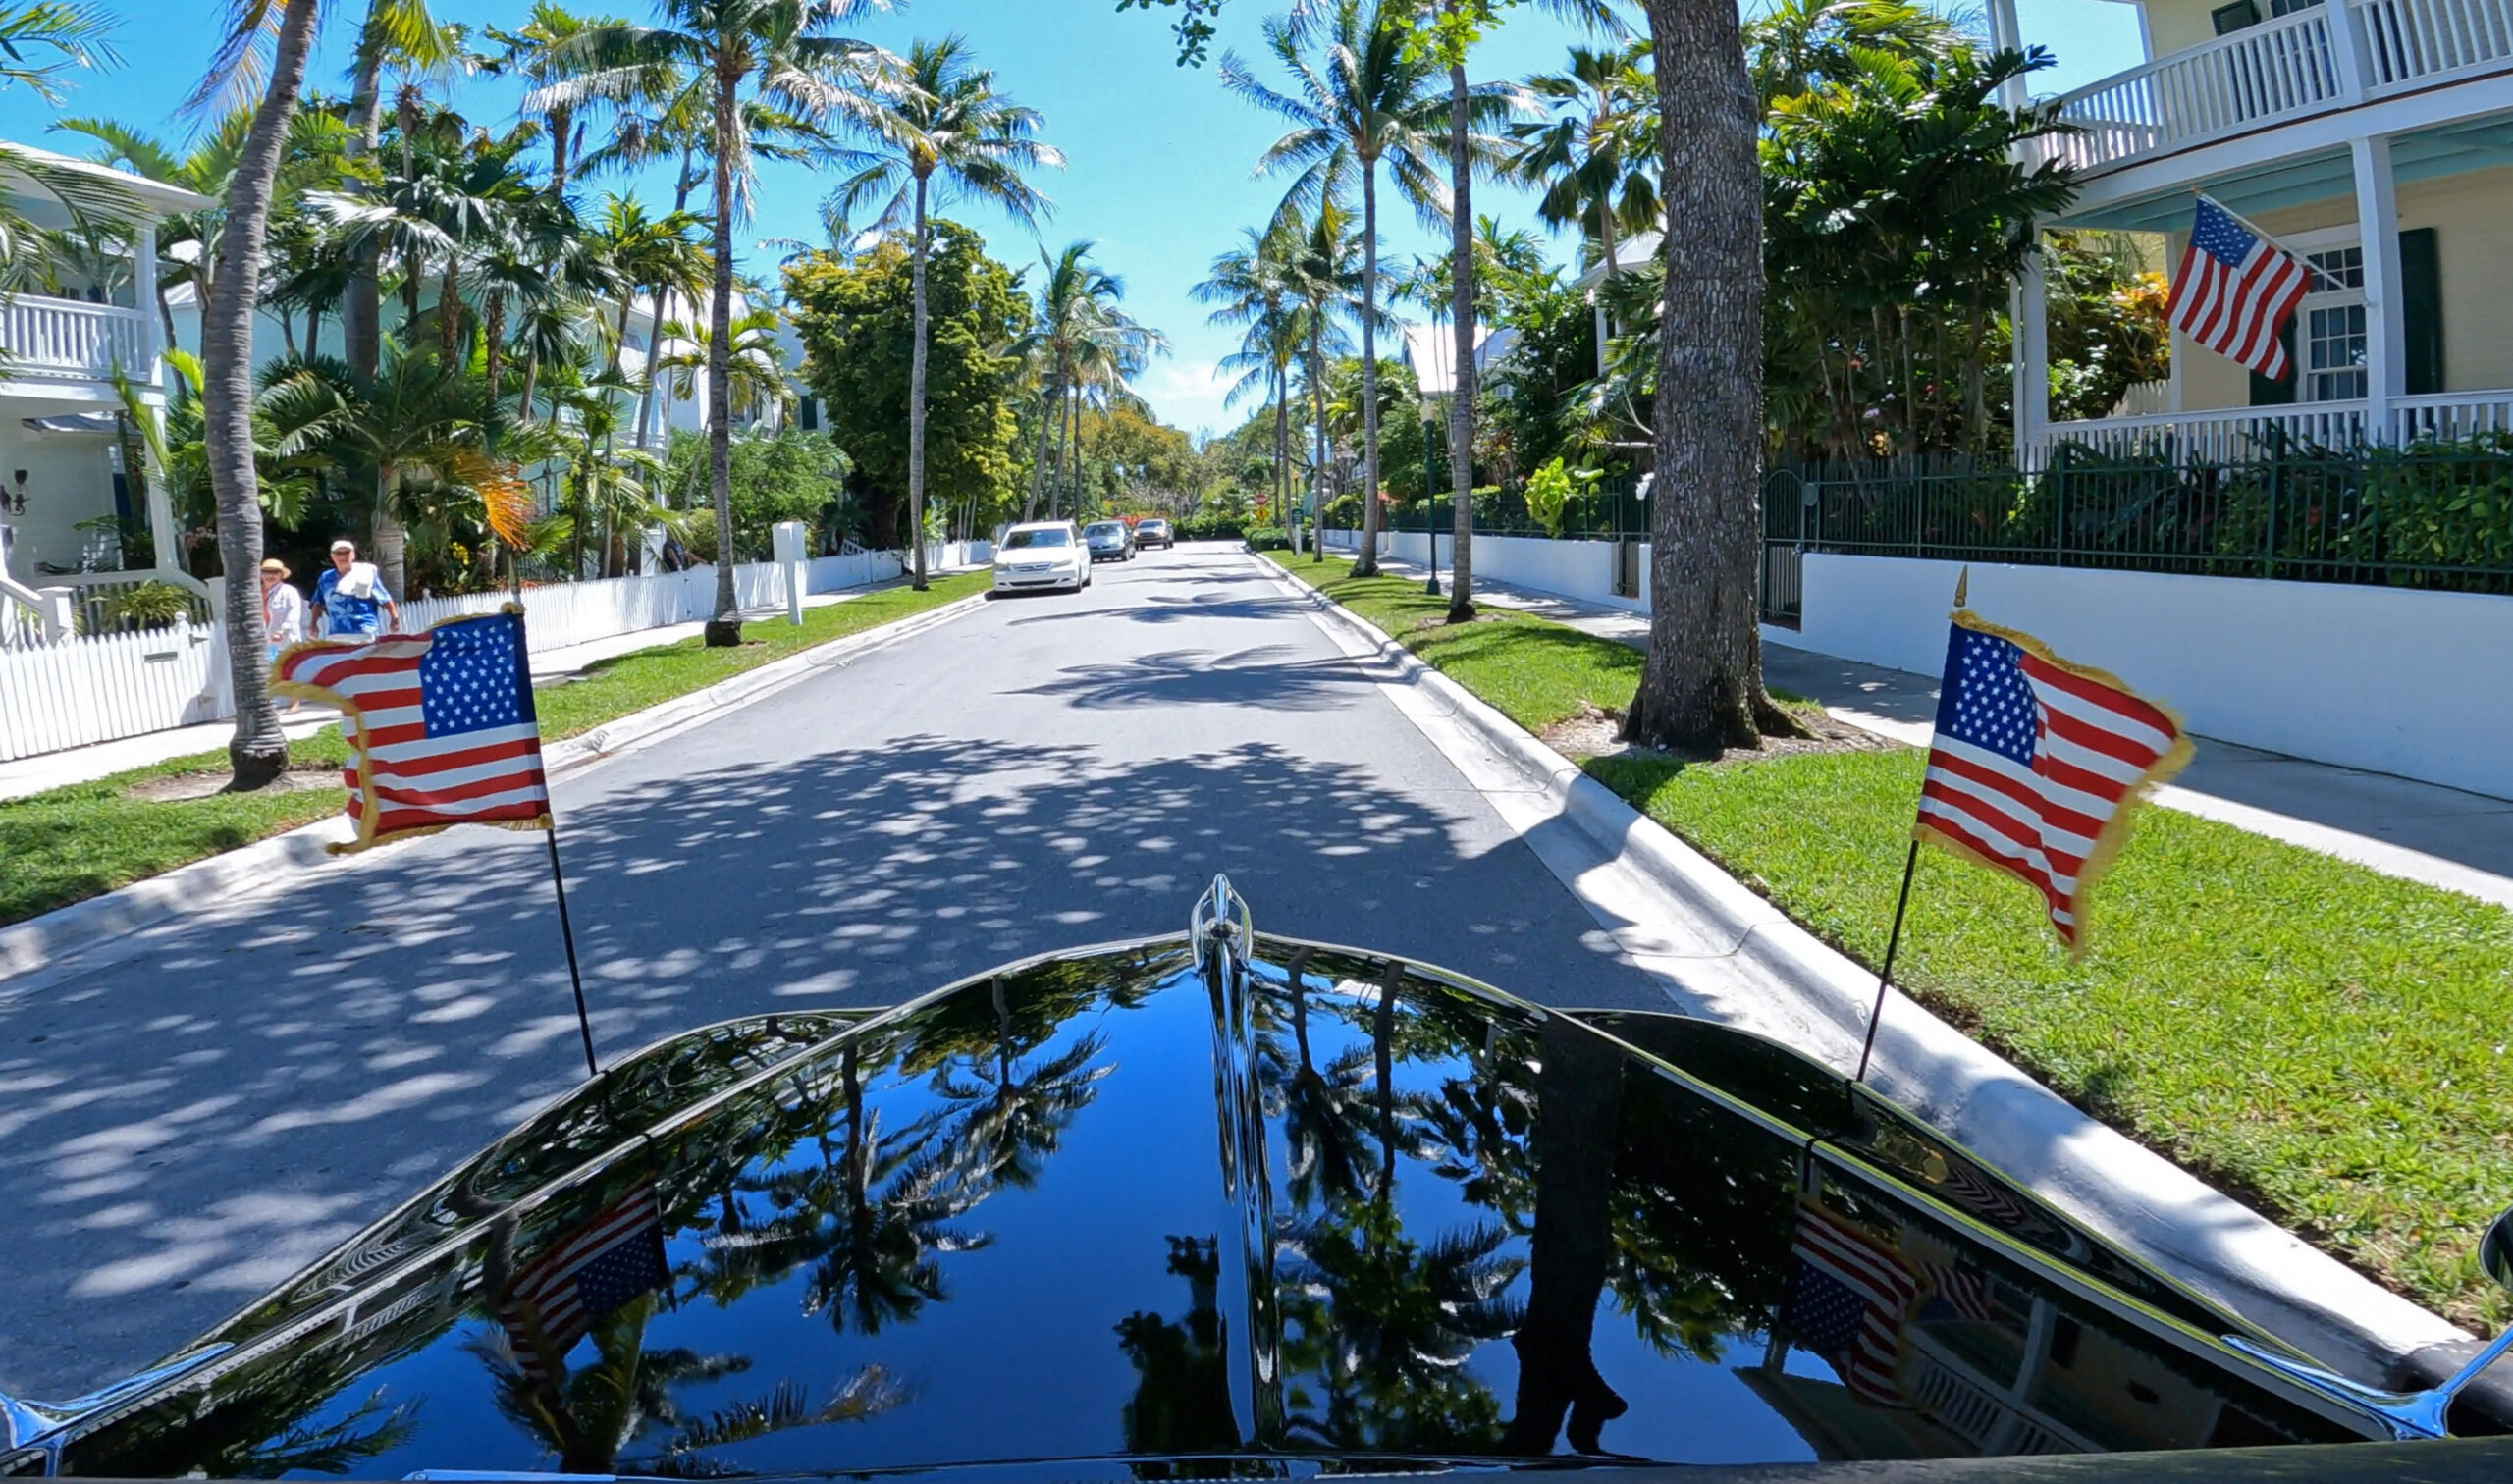 """This photo shows the view out the front windshield of a presidential limousine once used by President Harry S. Truman as it rolls down a street Thursday, March 11, 2021, in Key West, Fla. A ride in the limo, one of the vehicles that transported Truman during his 1945-1953 presidency, is part of the Key West Harry S. Truman Little White House Museum's recently debuted """"White Glove Tour,"""" providing small groups views of Truman objects not on public display. America's 33rd president spent nearly six months in Key West spread over 11 visits while in office. FOR EDITORIAL USE ONLY (Steve Panariello/Florida Keys News Bureau/HO)"""